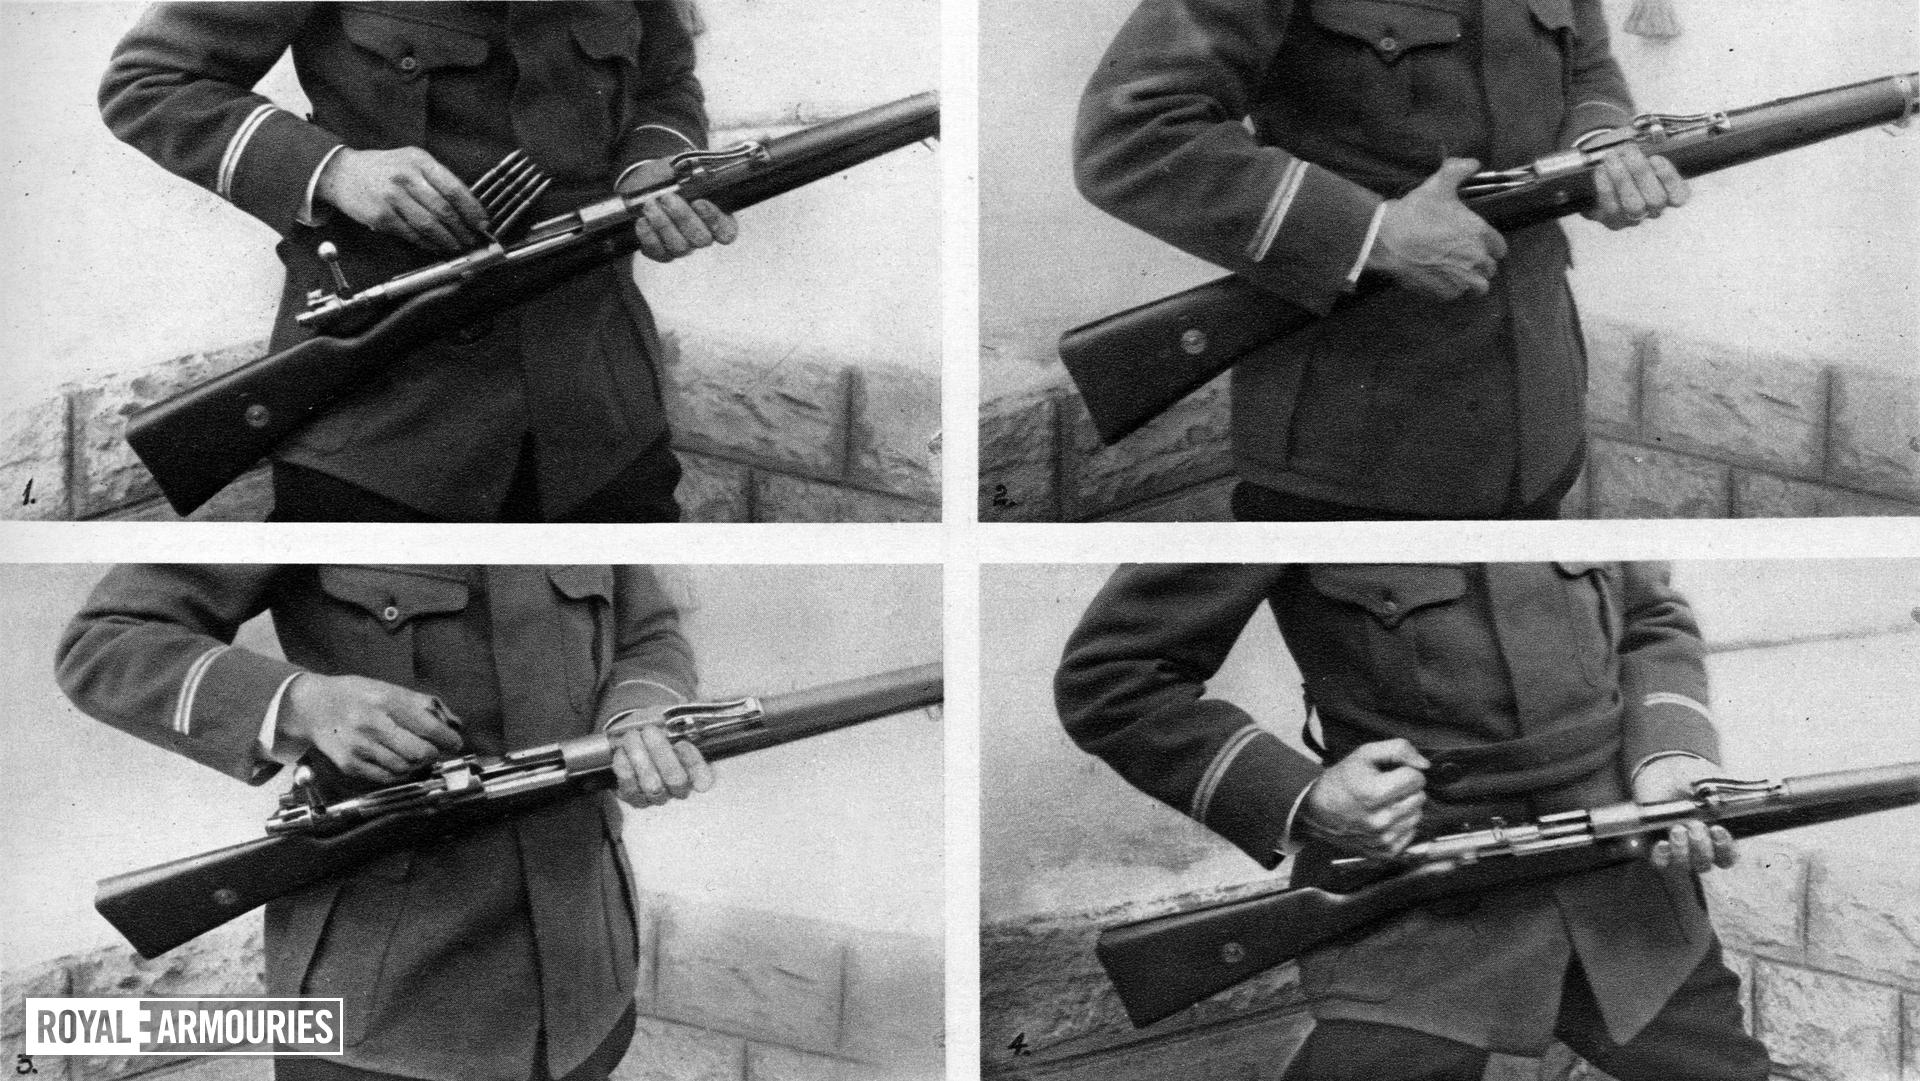 Photograph entitled , 'The arm of Germany's new infantry : The Mauser and its clip of 5 pointed cartridges,' Britain, December 23rd, 1914 page 13, part 20 from the Illustrated War News.